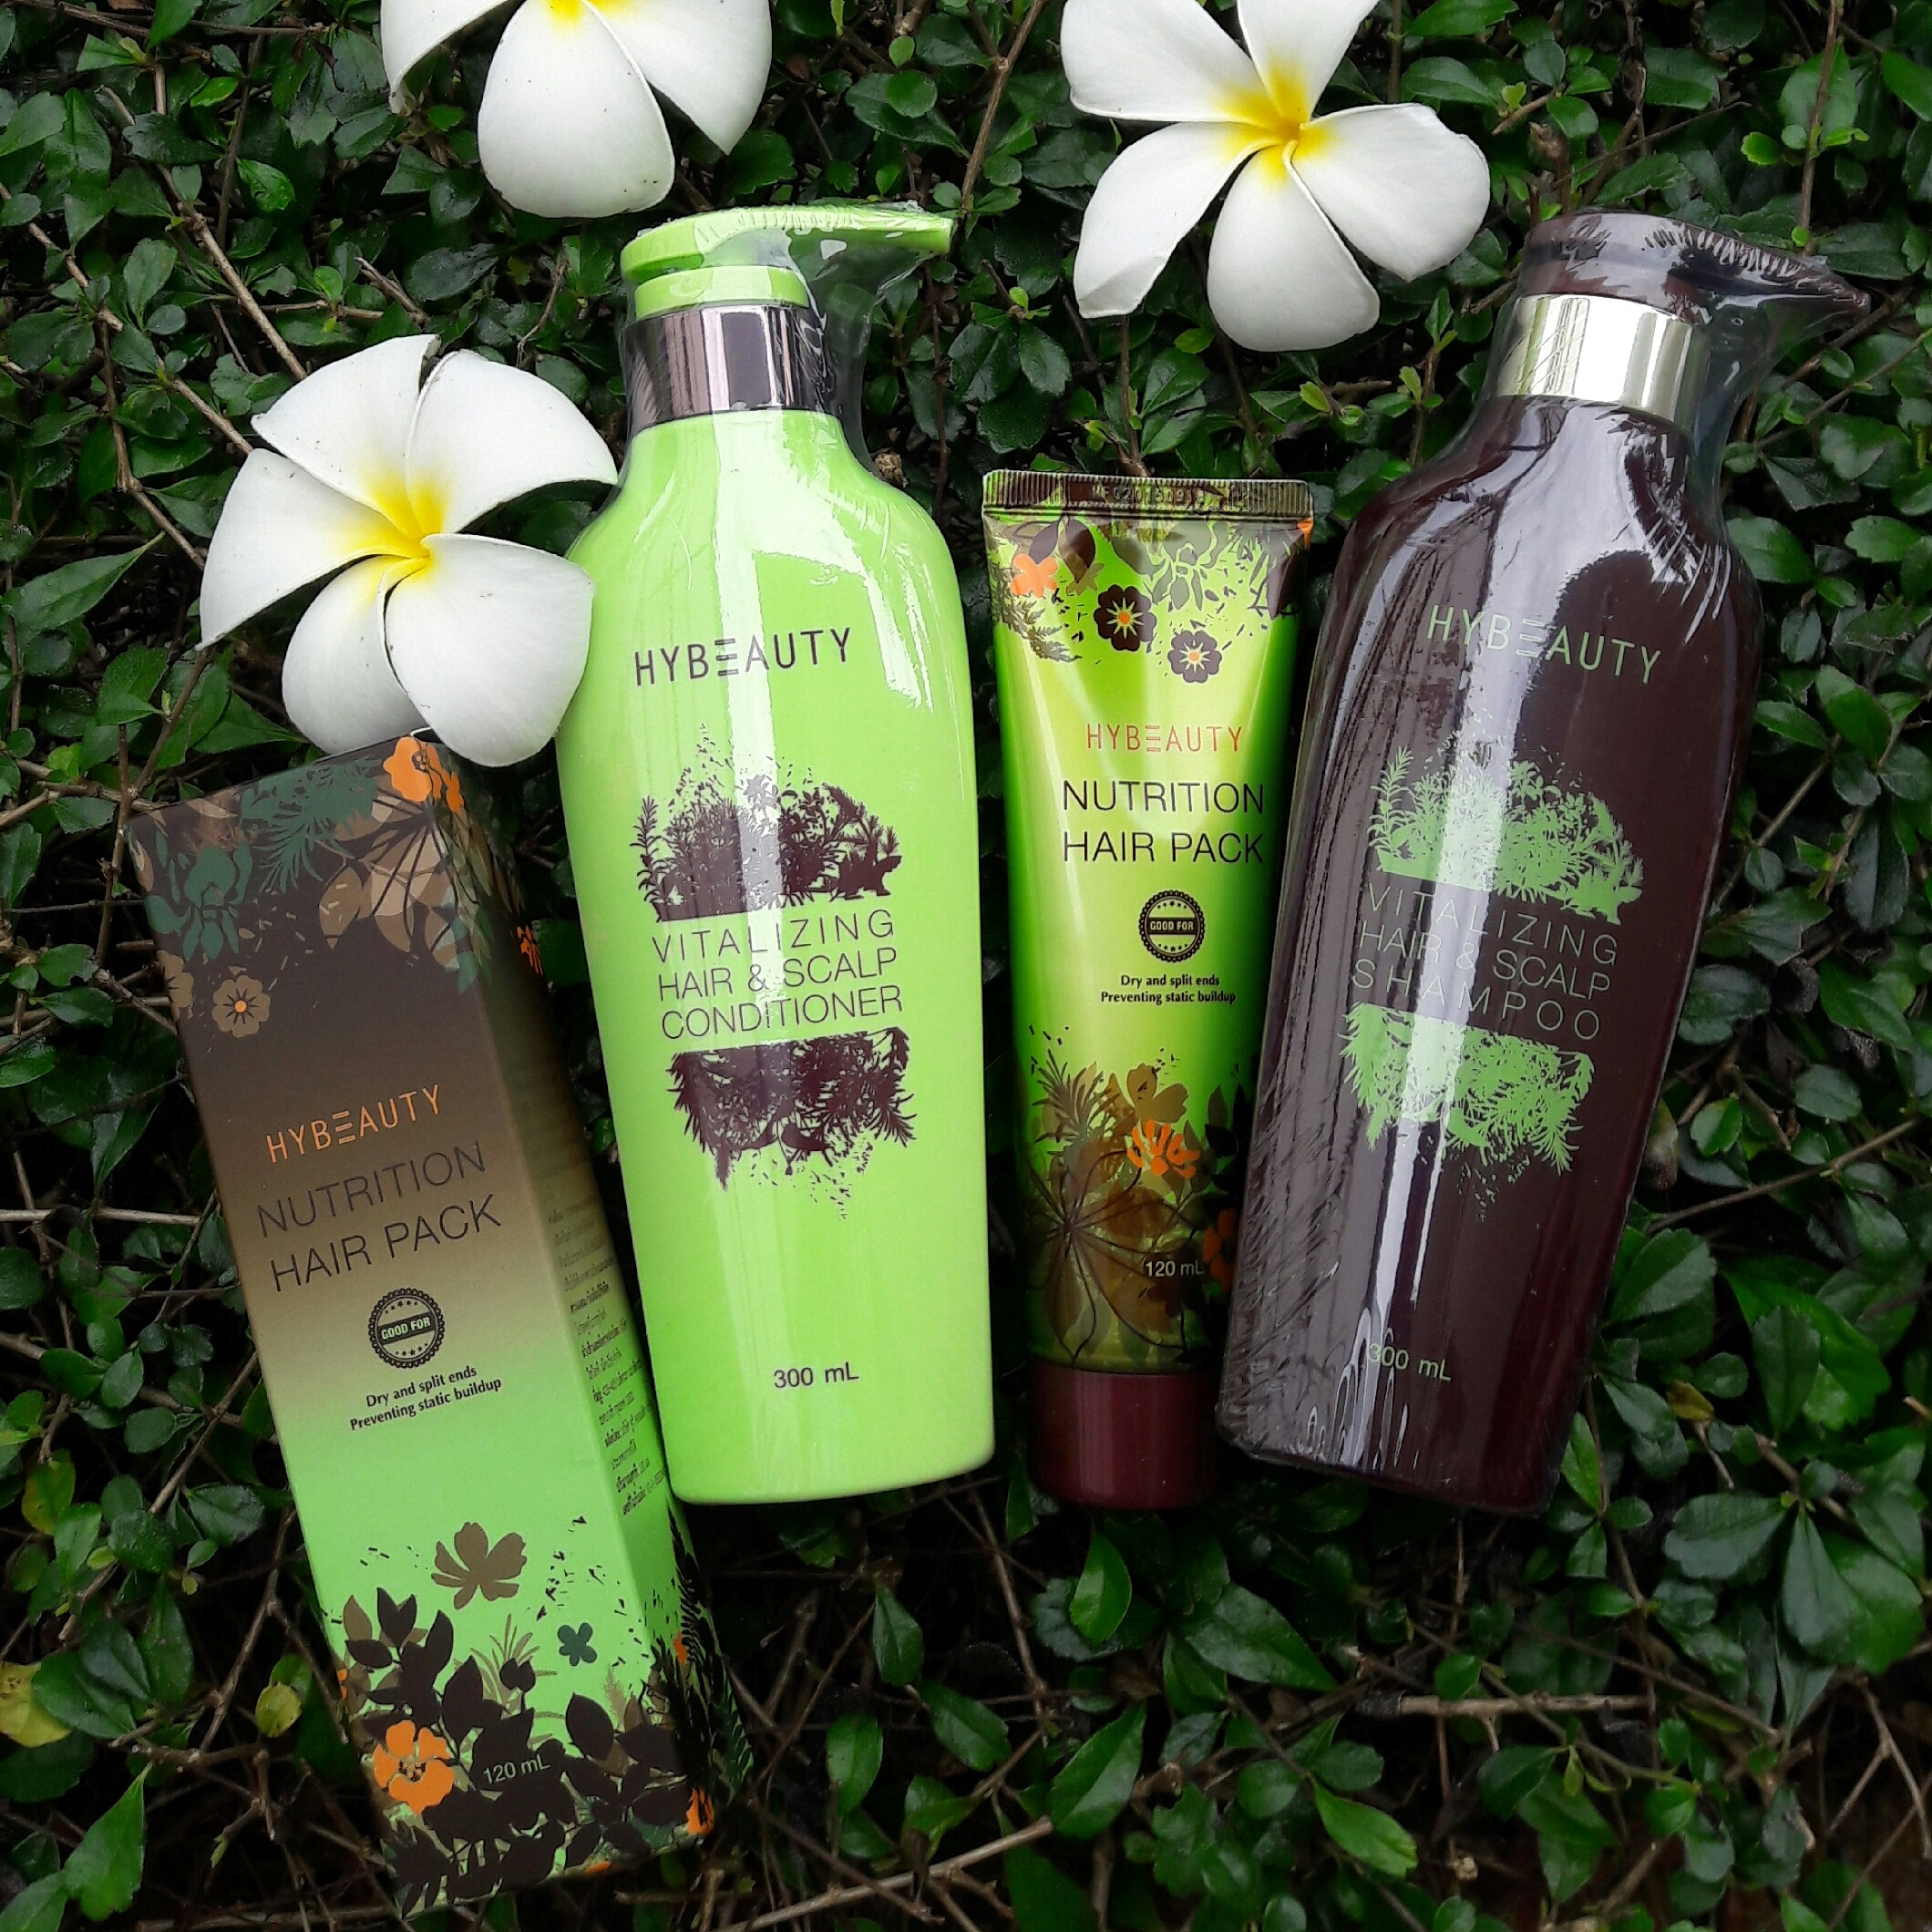 Hybeauty Hair Collection By Hylife (Shampoo + Conditioner + Hair Pack).